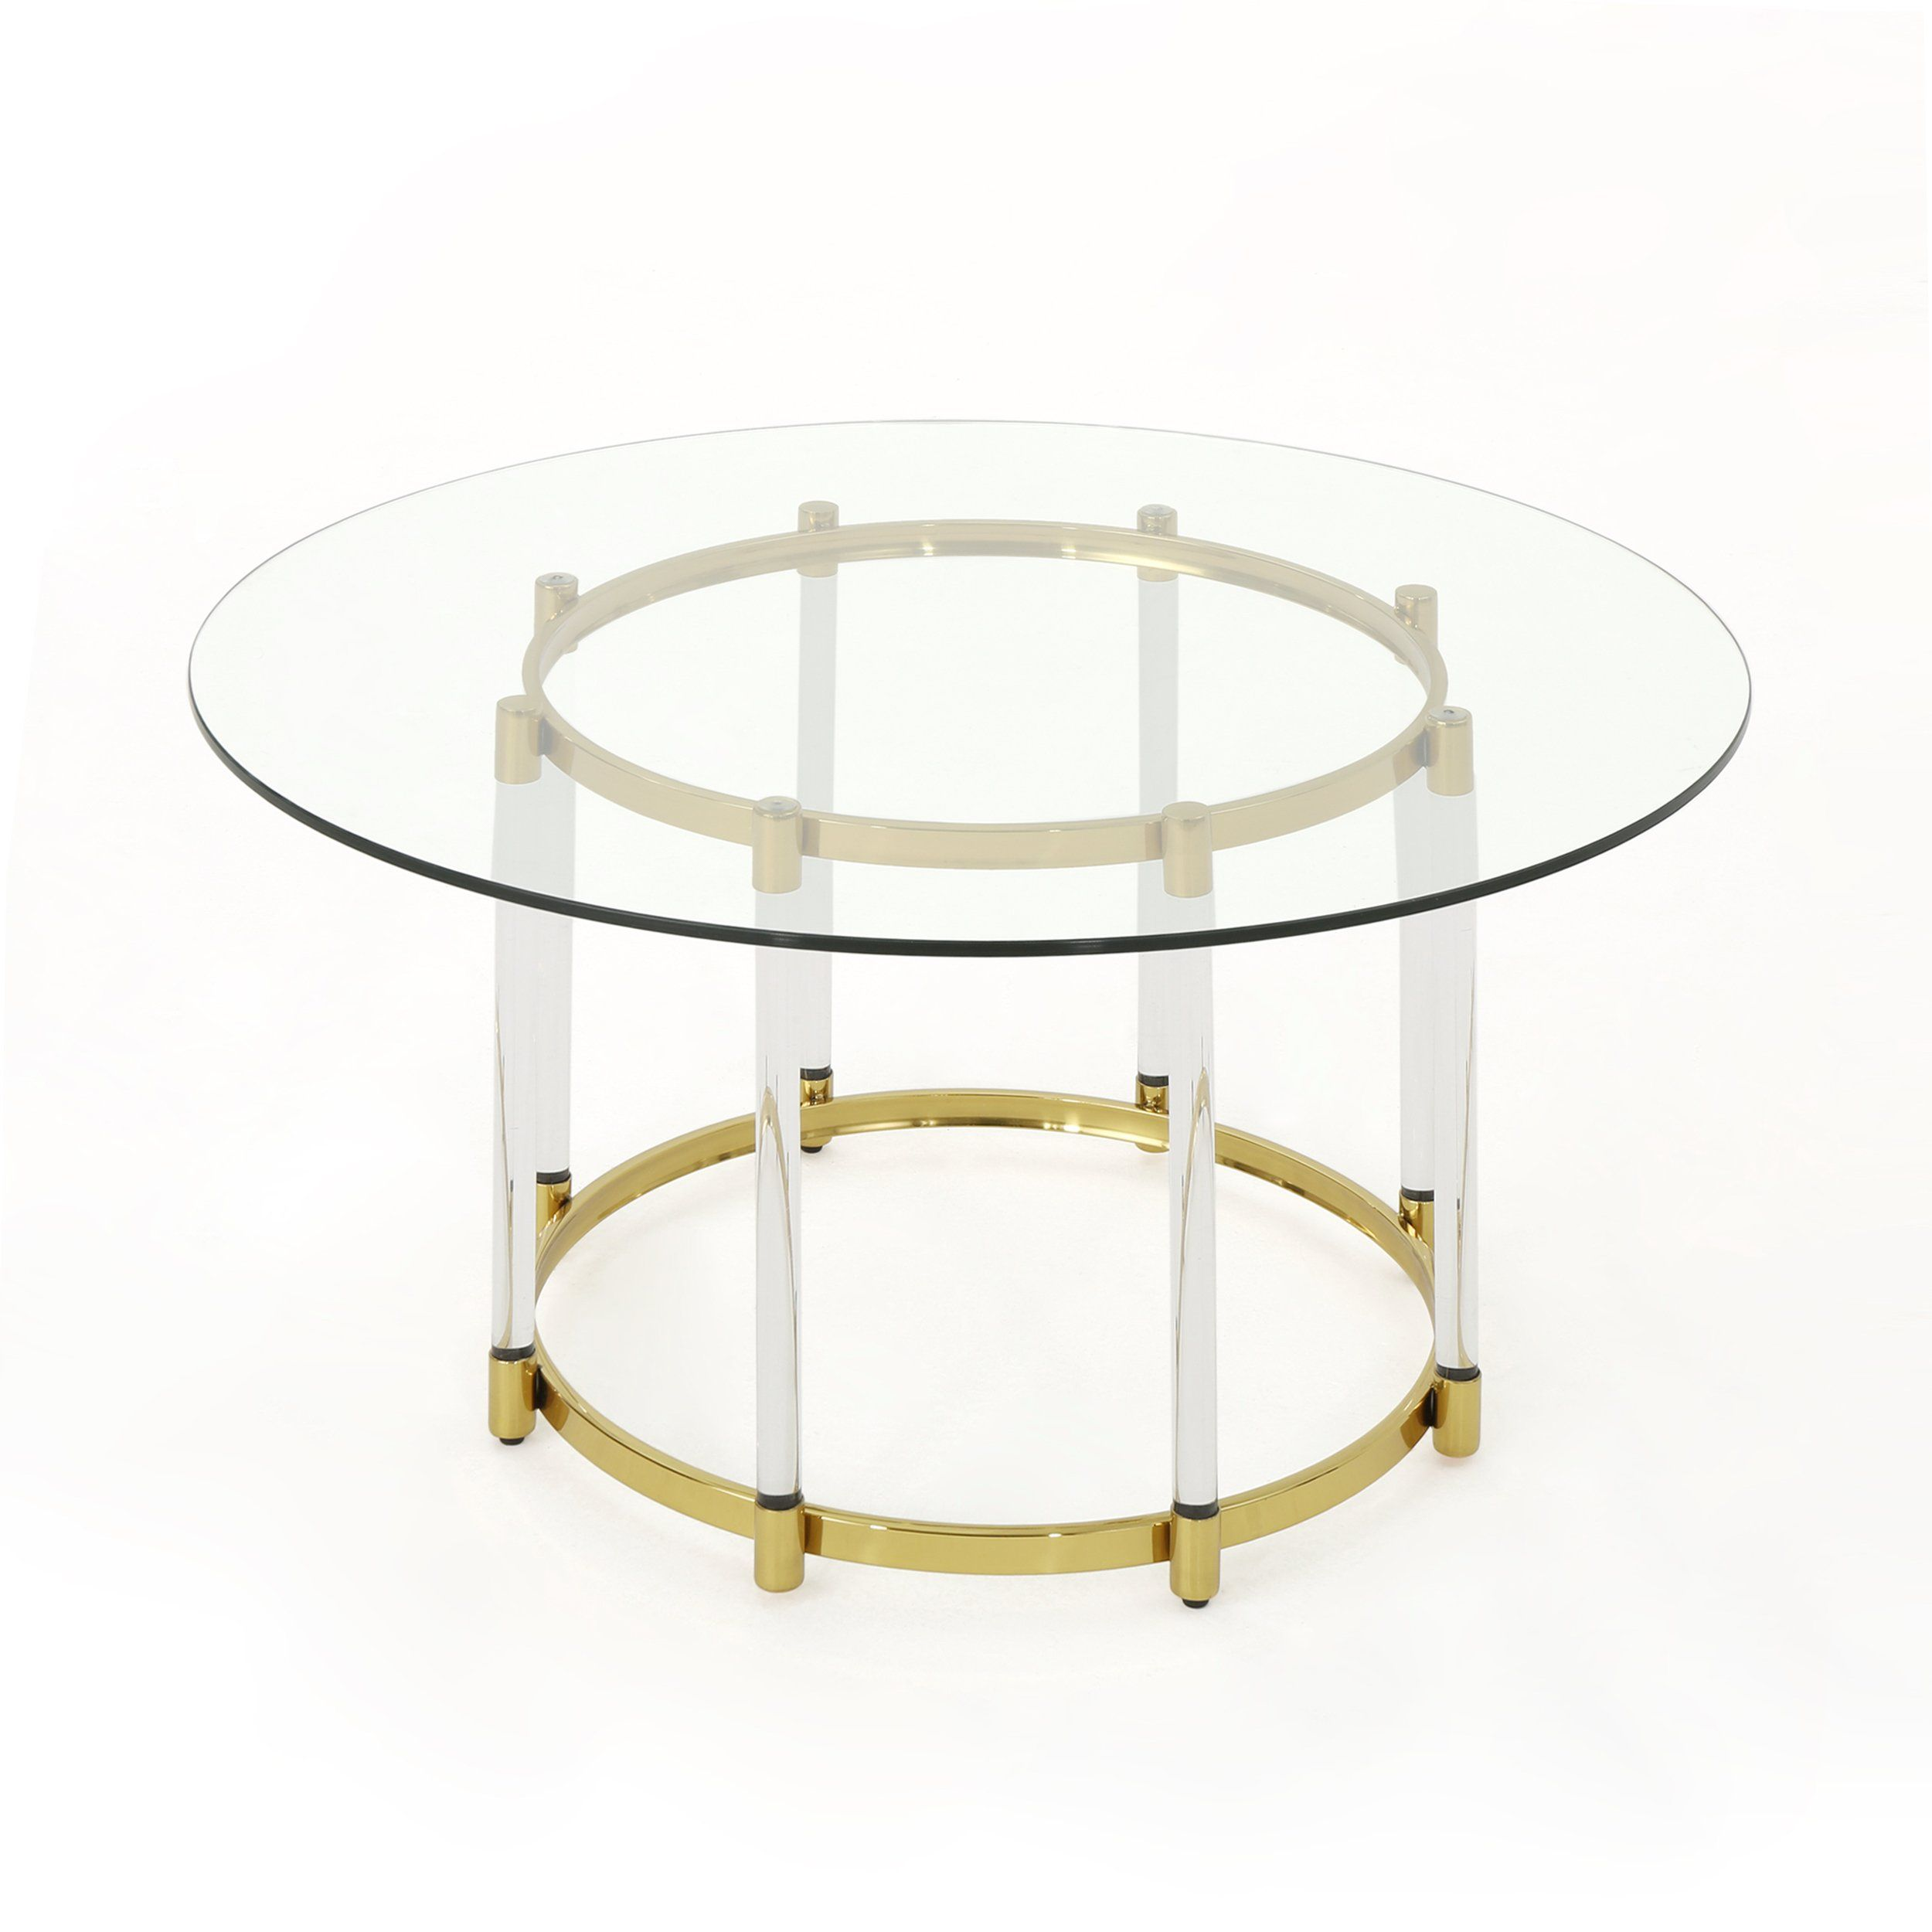 Verna Modern Tempered Glass Coffee Table With Gold Finished Stainless Steel Frame See This Terri Modern Coffee Tables Coffee Table Tempered Glass Table Top [ 2500 x 2500 Pixel ]